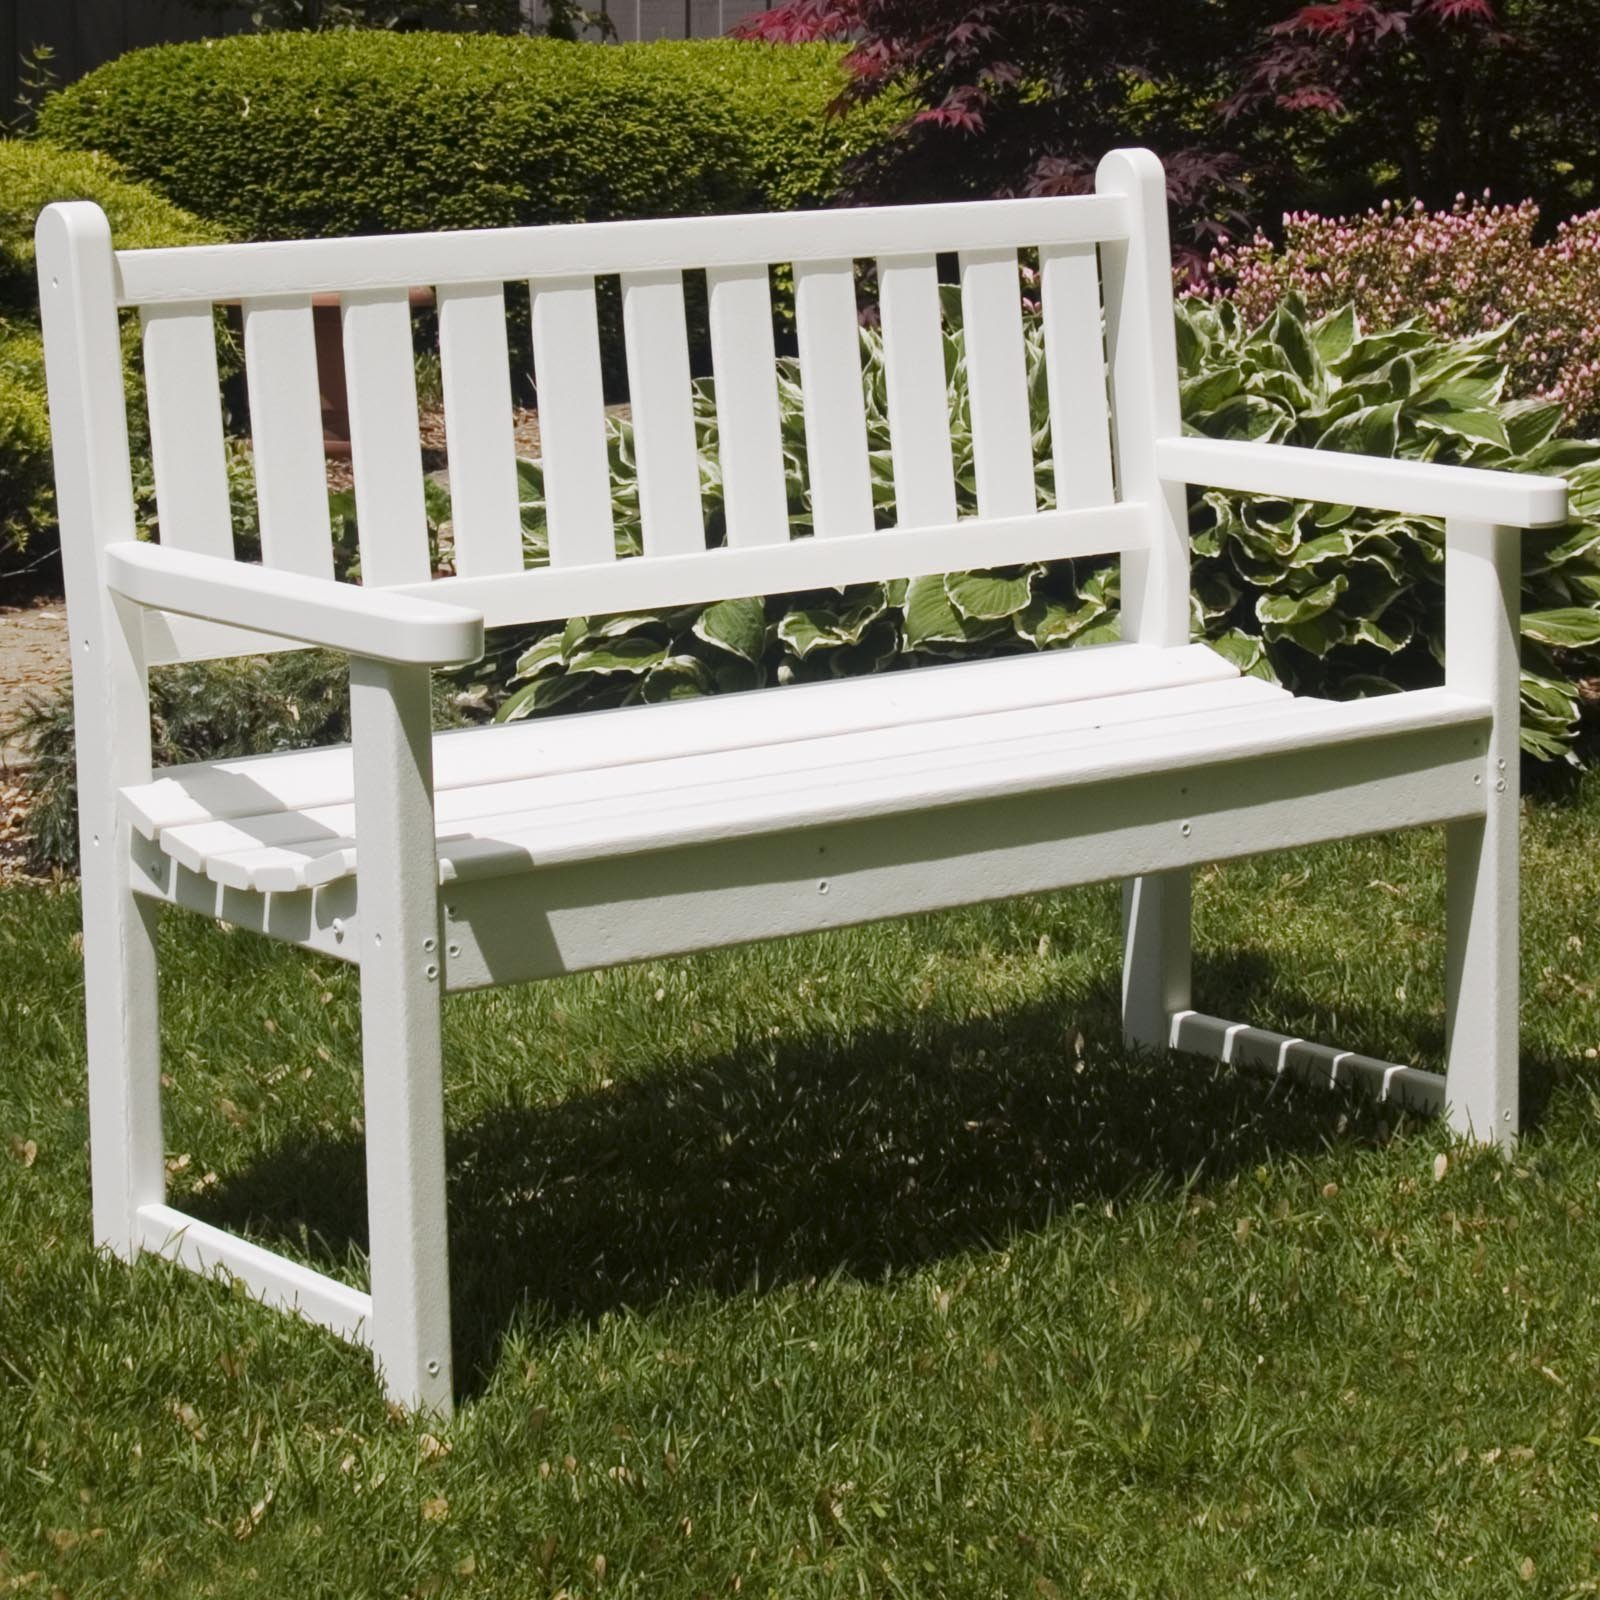 Plastic Garden Furniture Of Plastic Garden Furniture Furniture